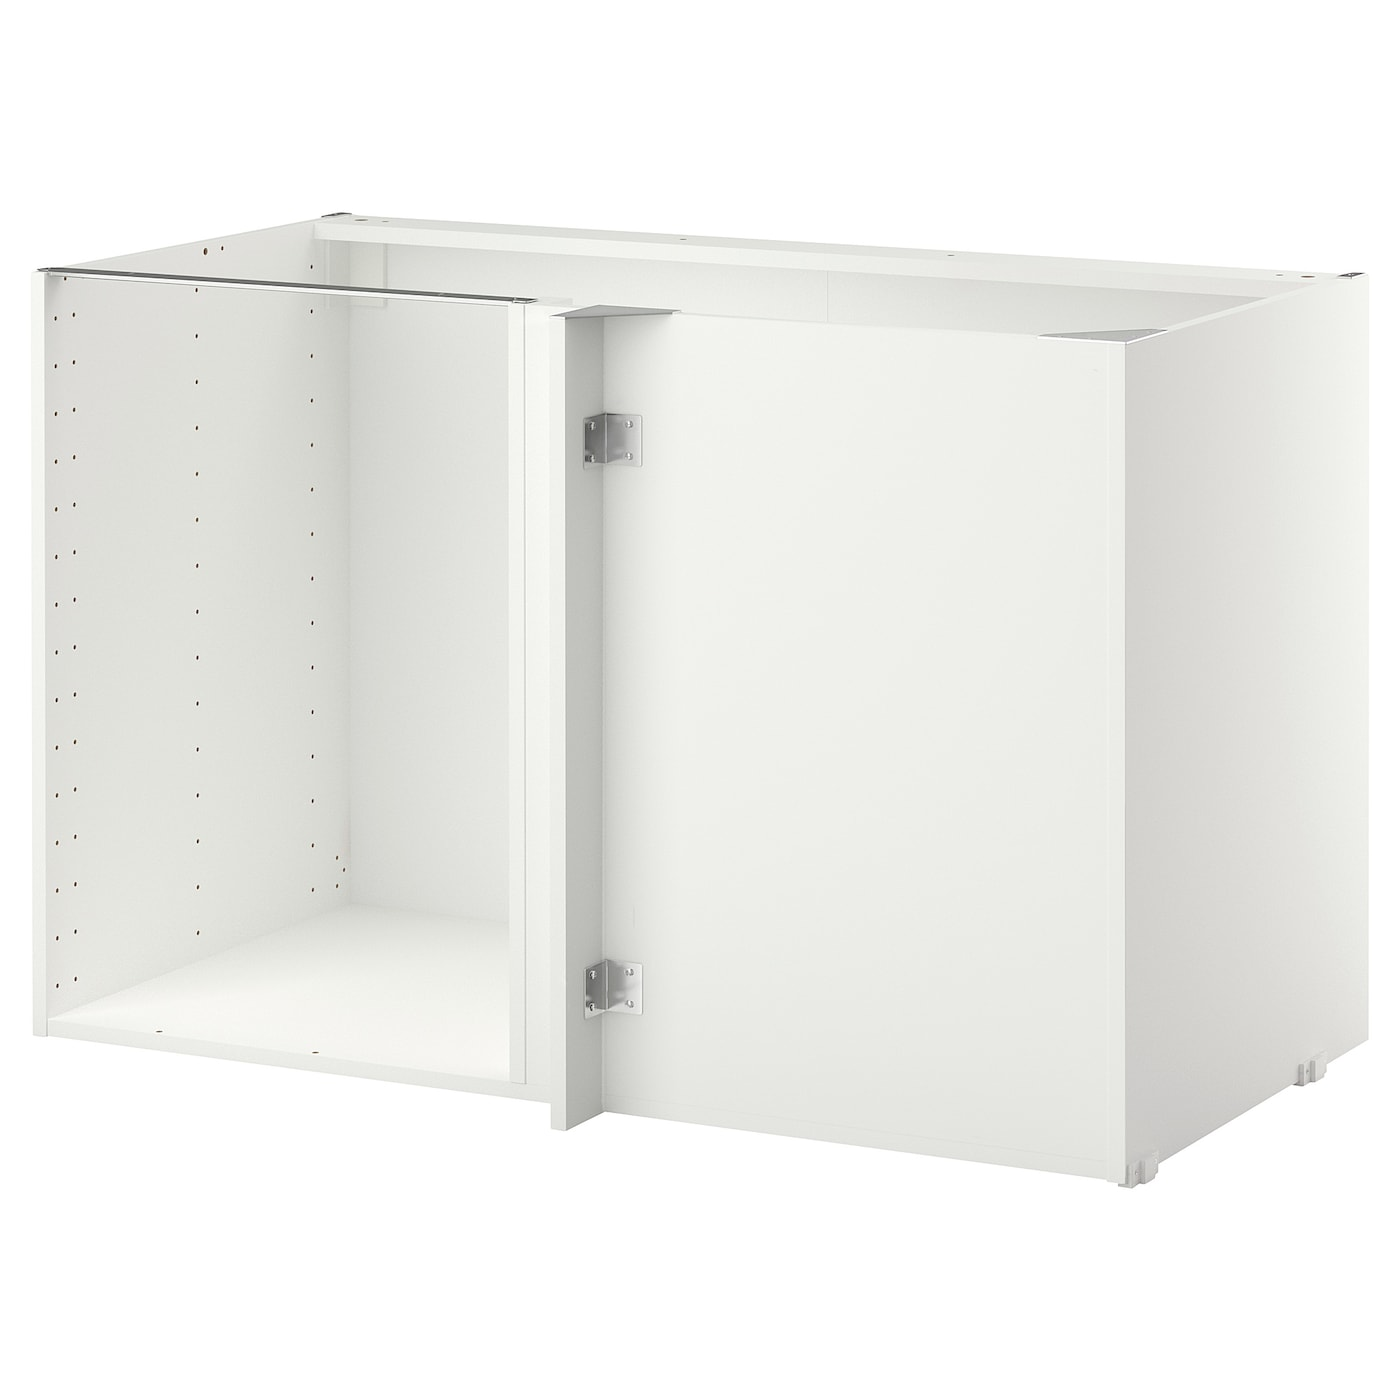 Metod Structure Element Bas D Angle Blanc 128x68x80 Cm Ikea